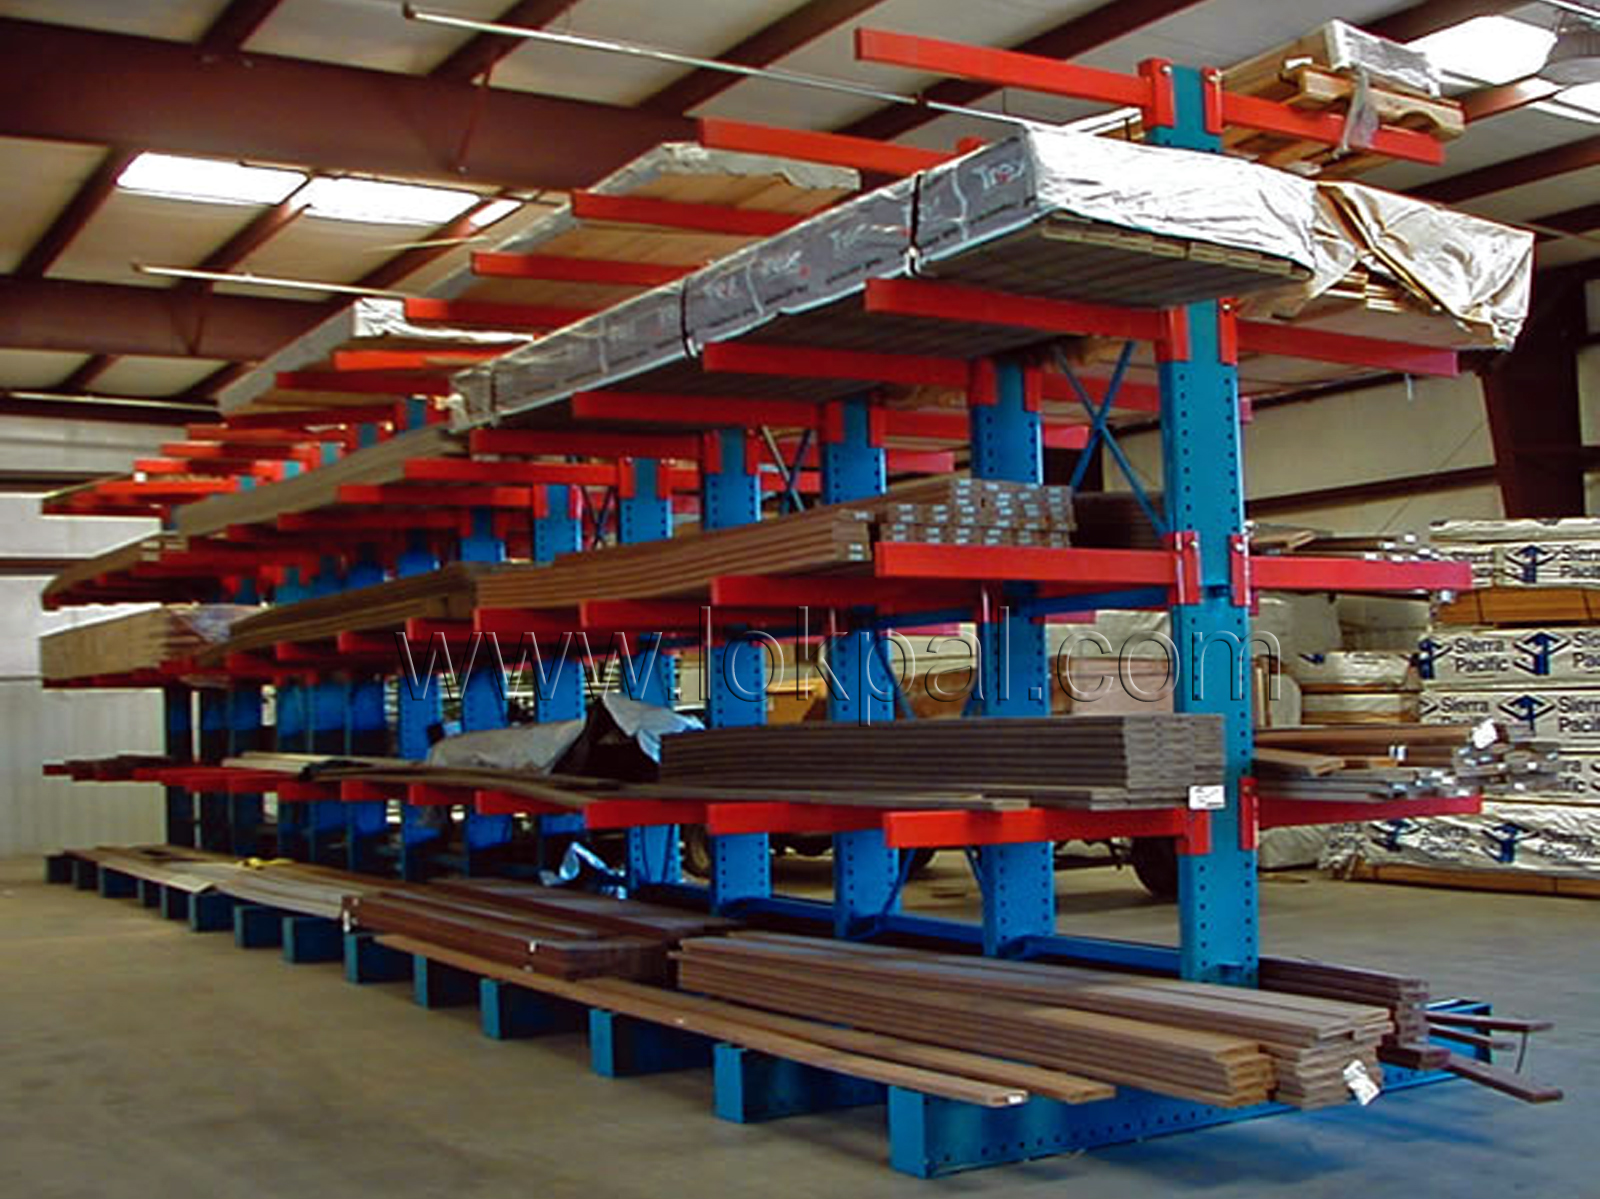 Cantilever Racking Systems - Equipement Industriel RC